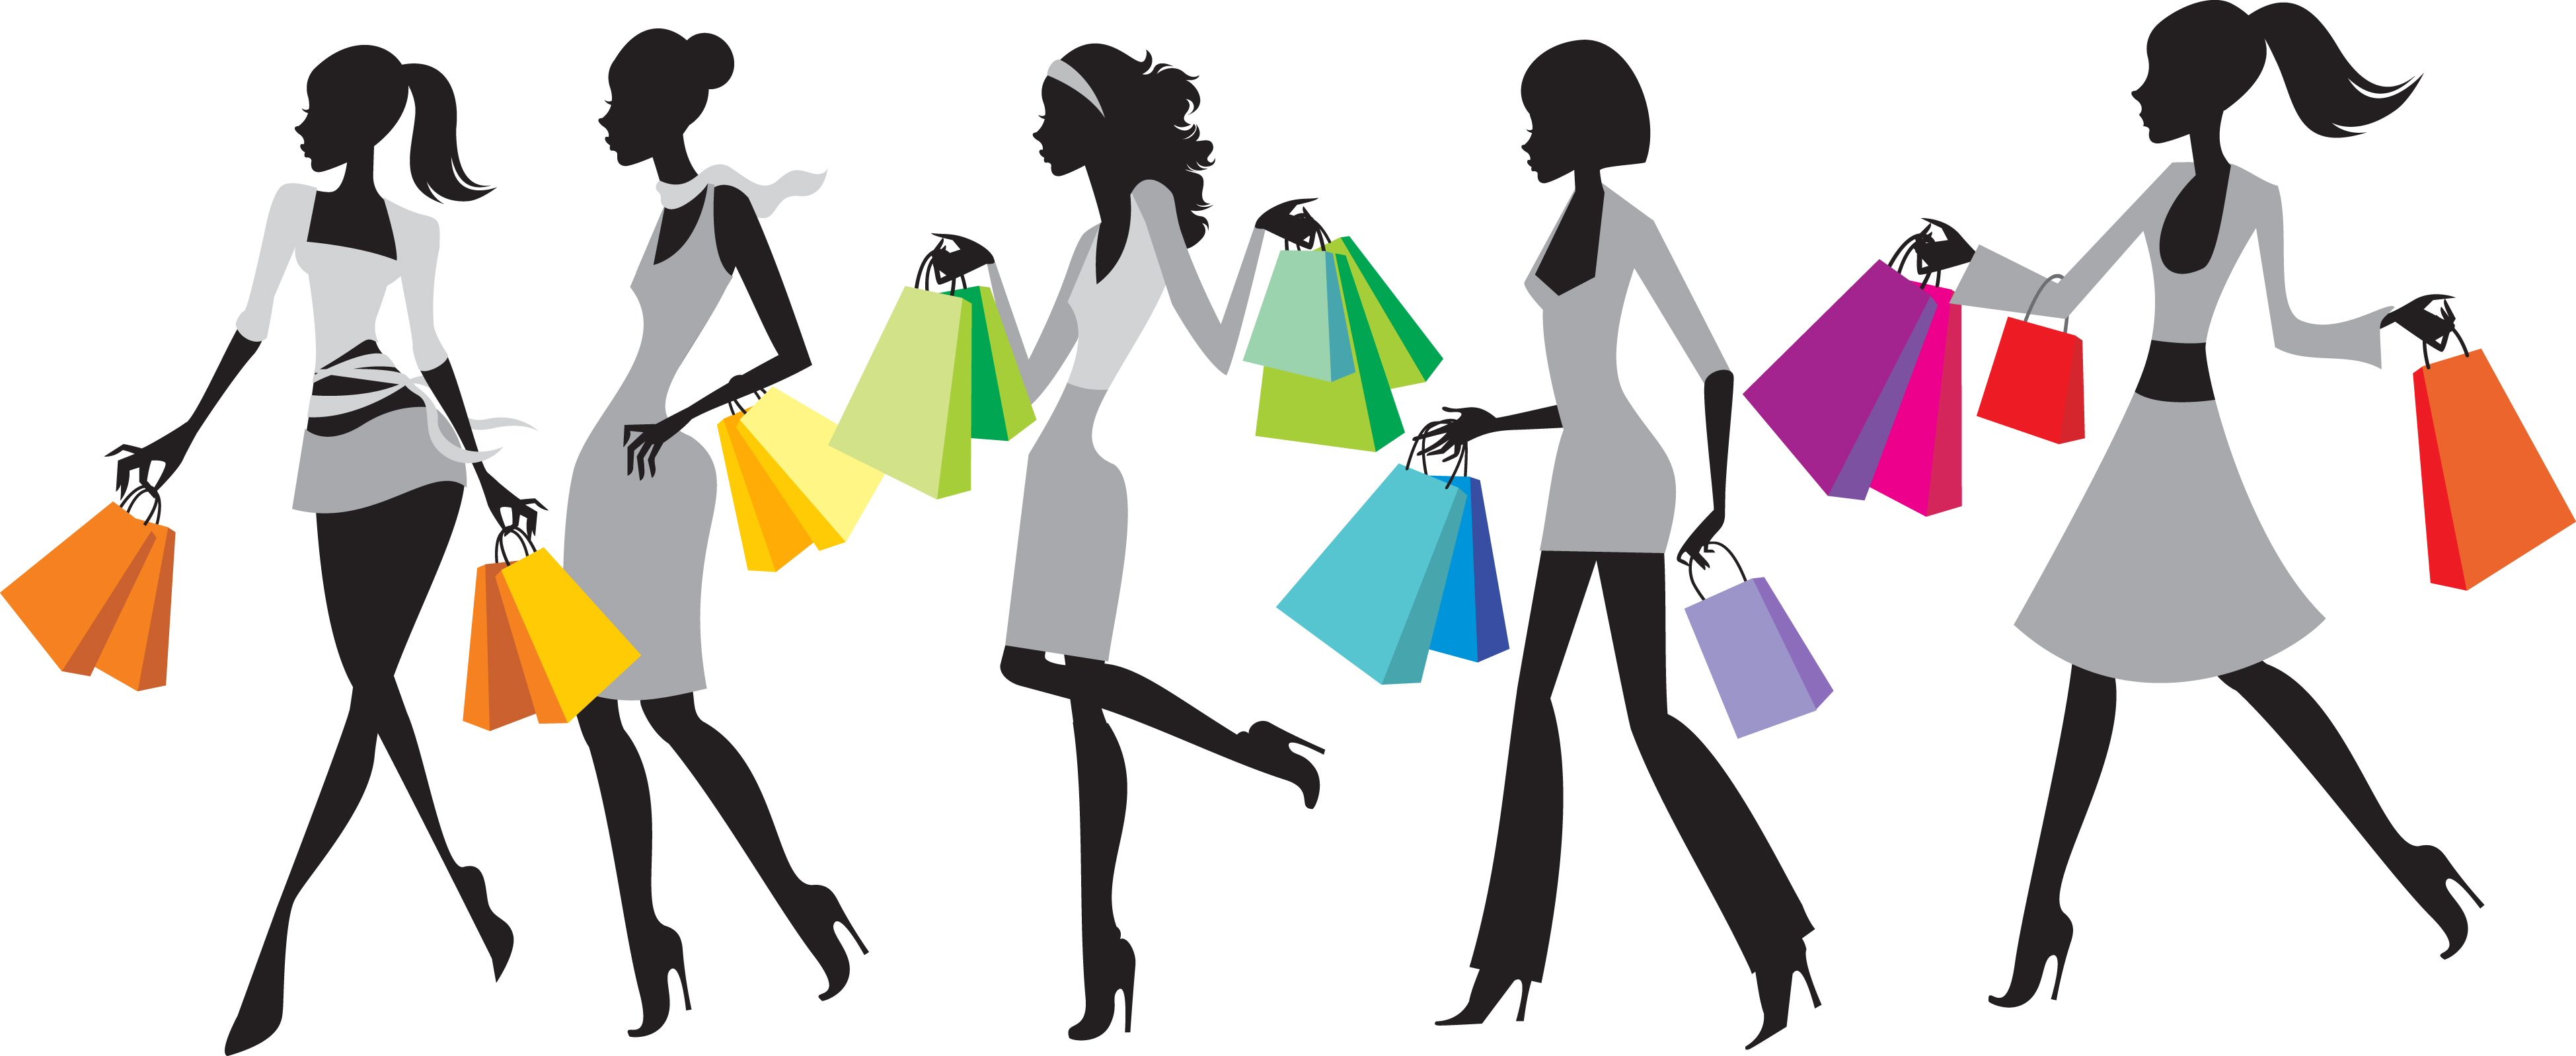 free-vector-fashion-shopping-01-vector_000527_fashion_shopping_01_vector.jpg